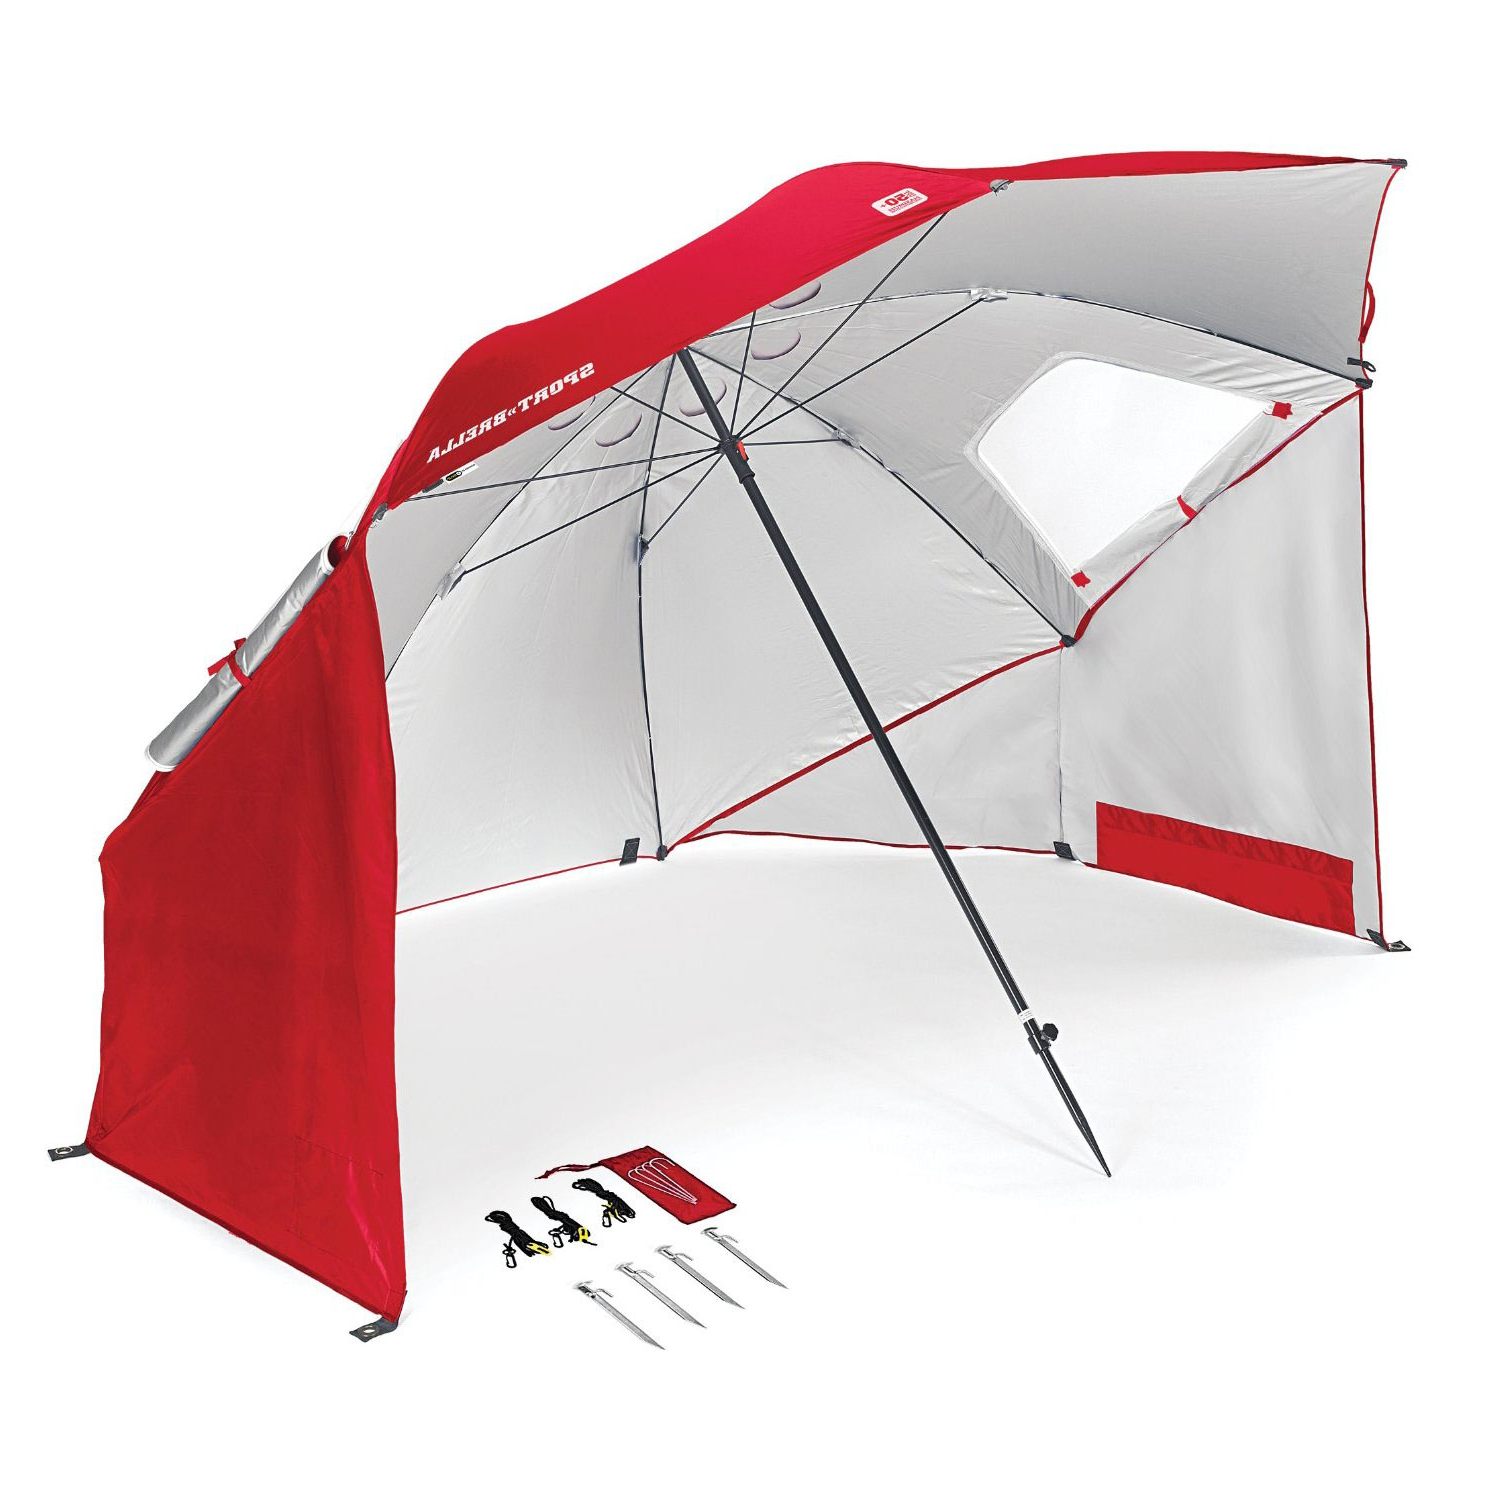 Sun Shelter Beach Umbrellas Regarding 2019 Best Beach Umbrella – Reviews & Buying Guide (august 2019) (View 6 of 20)